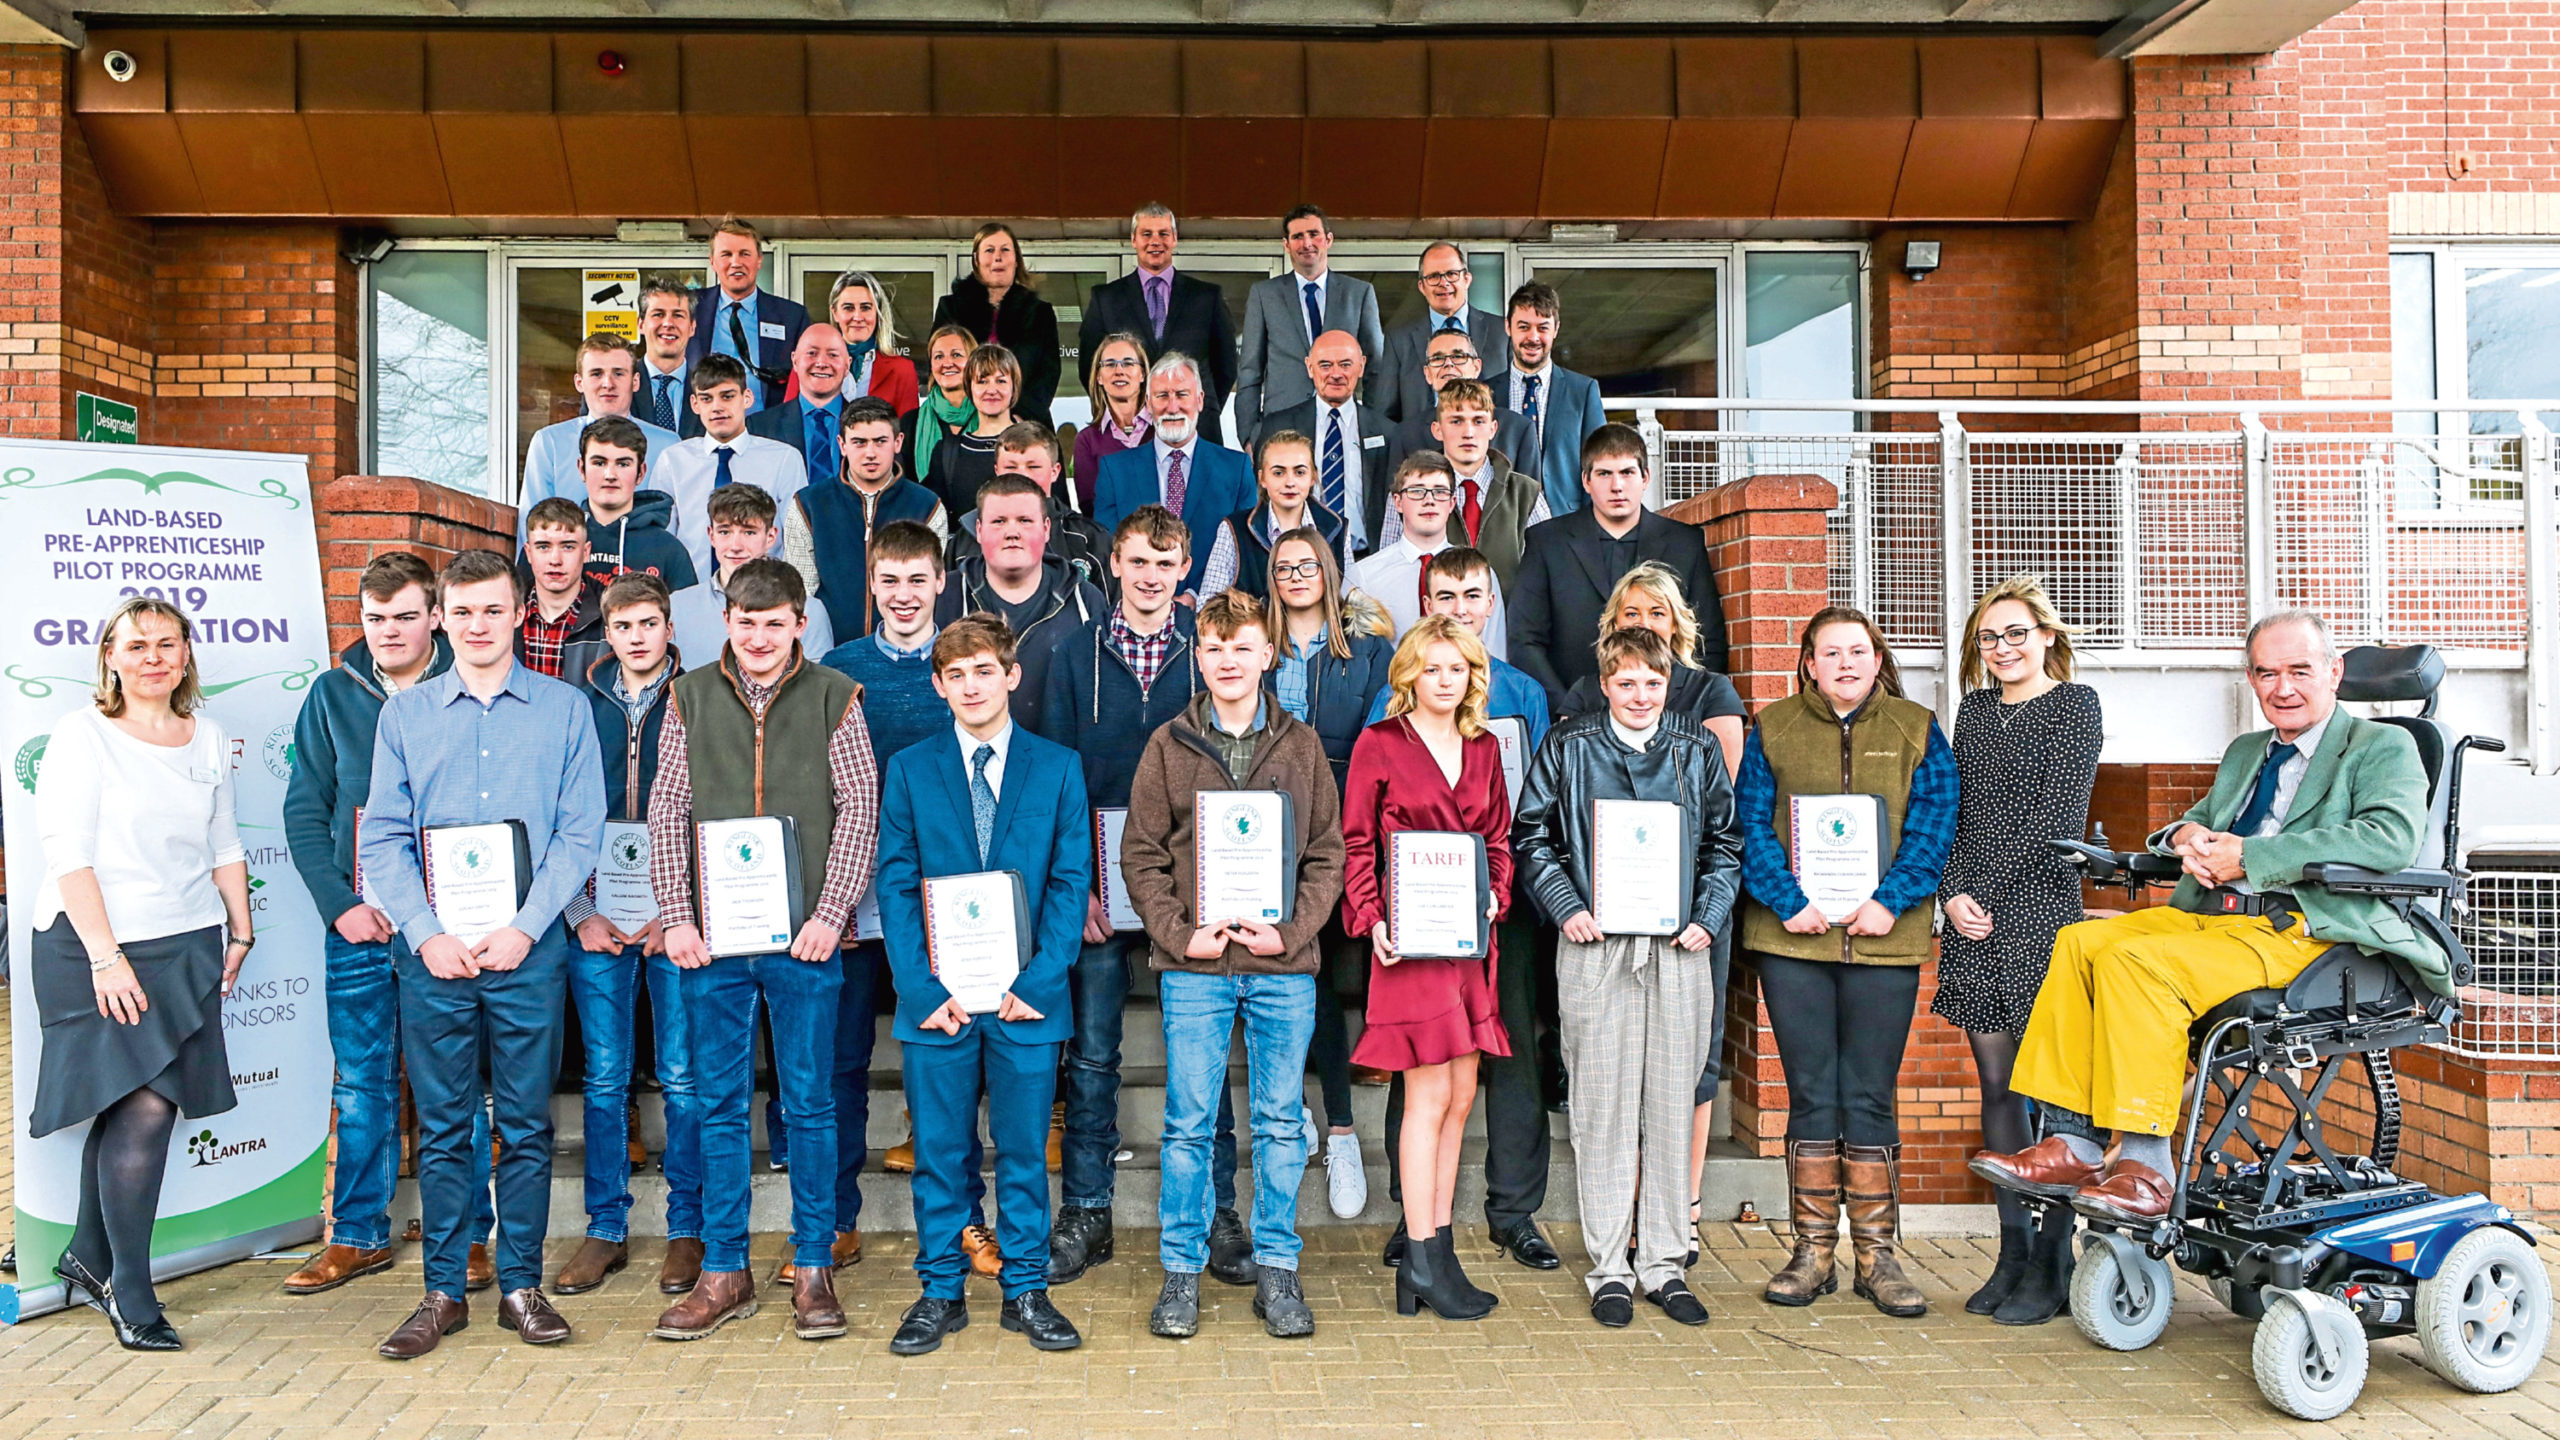 Pilot scheme pre-apprenticeship students and their mentors at the graduation ceremony which was held in Perth.